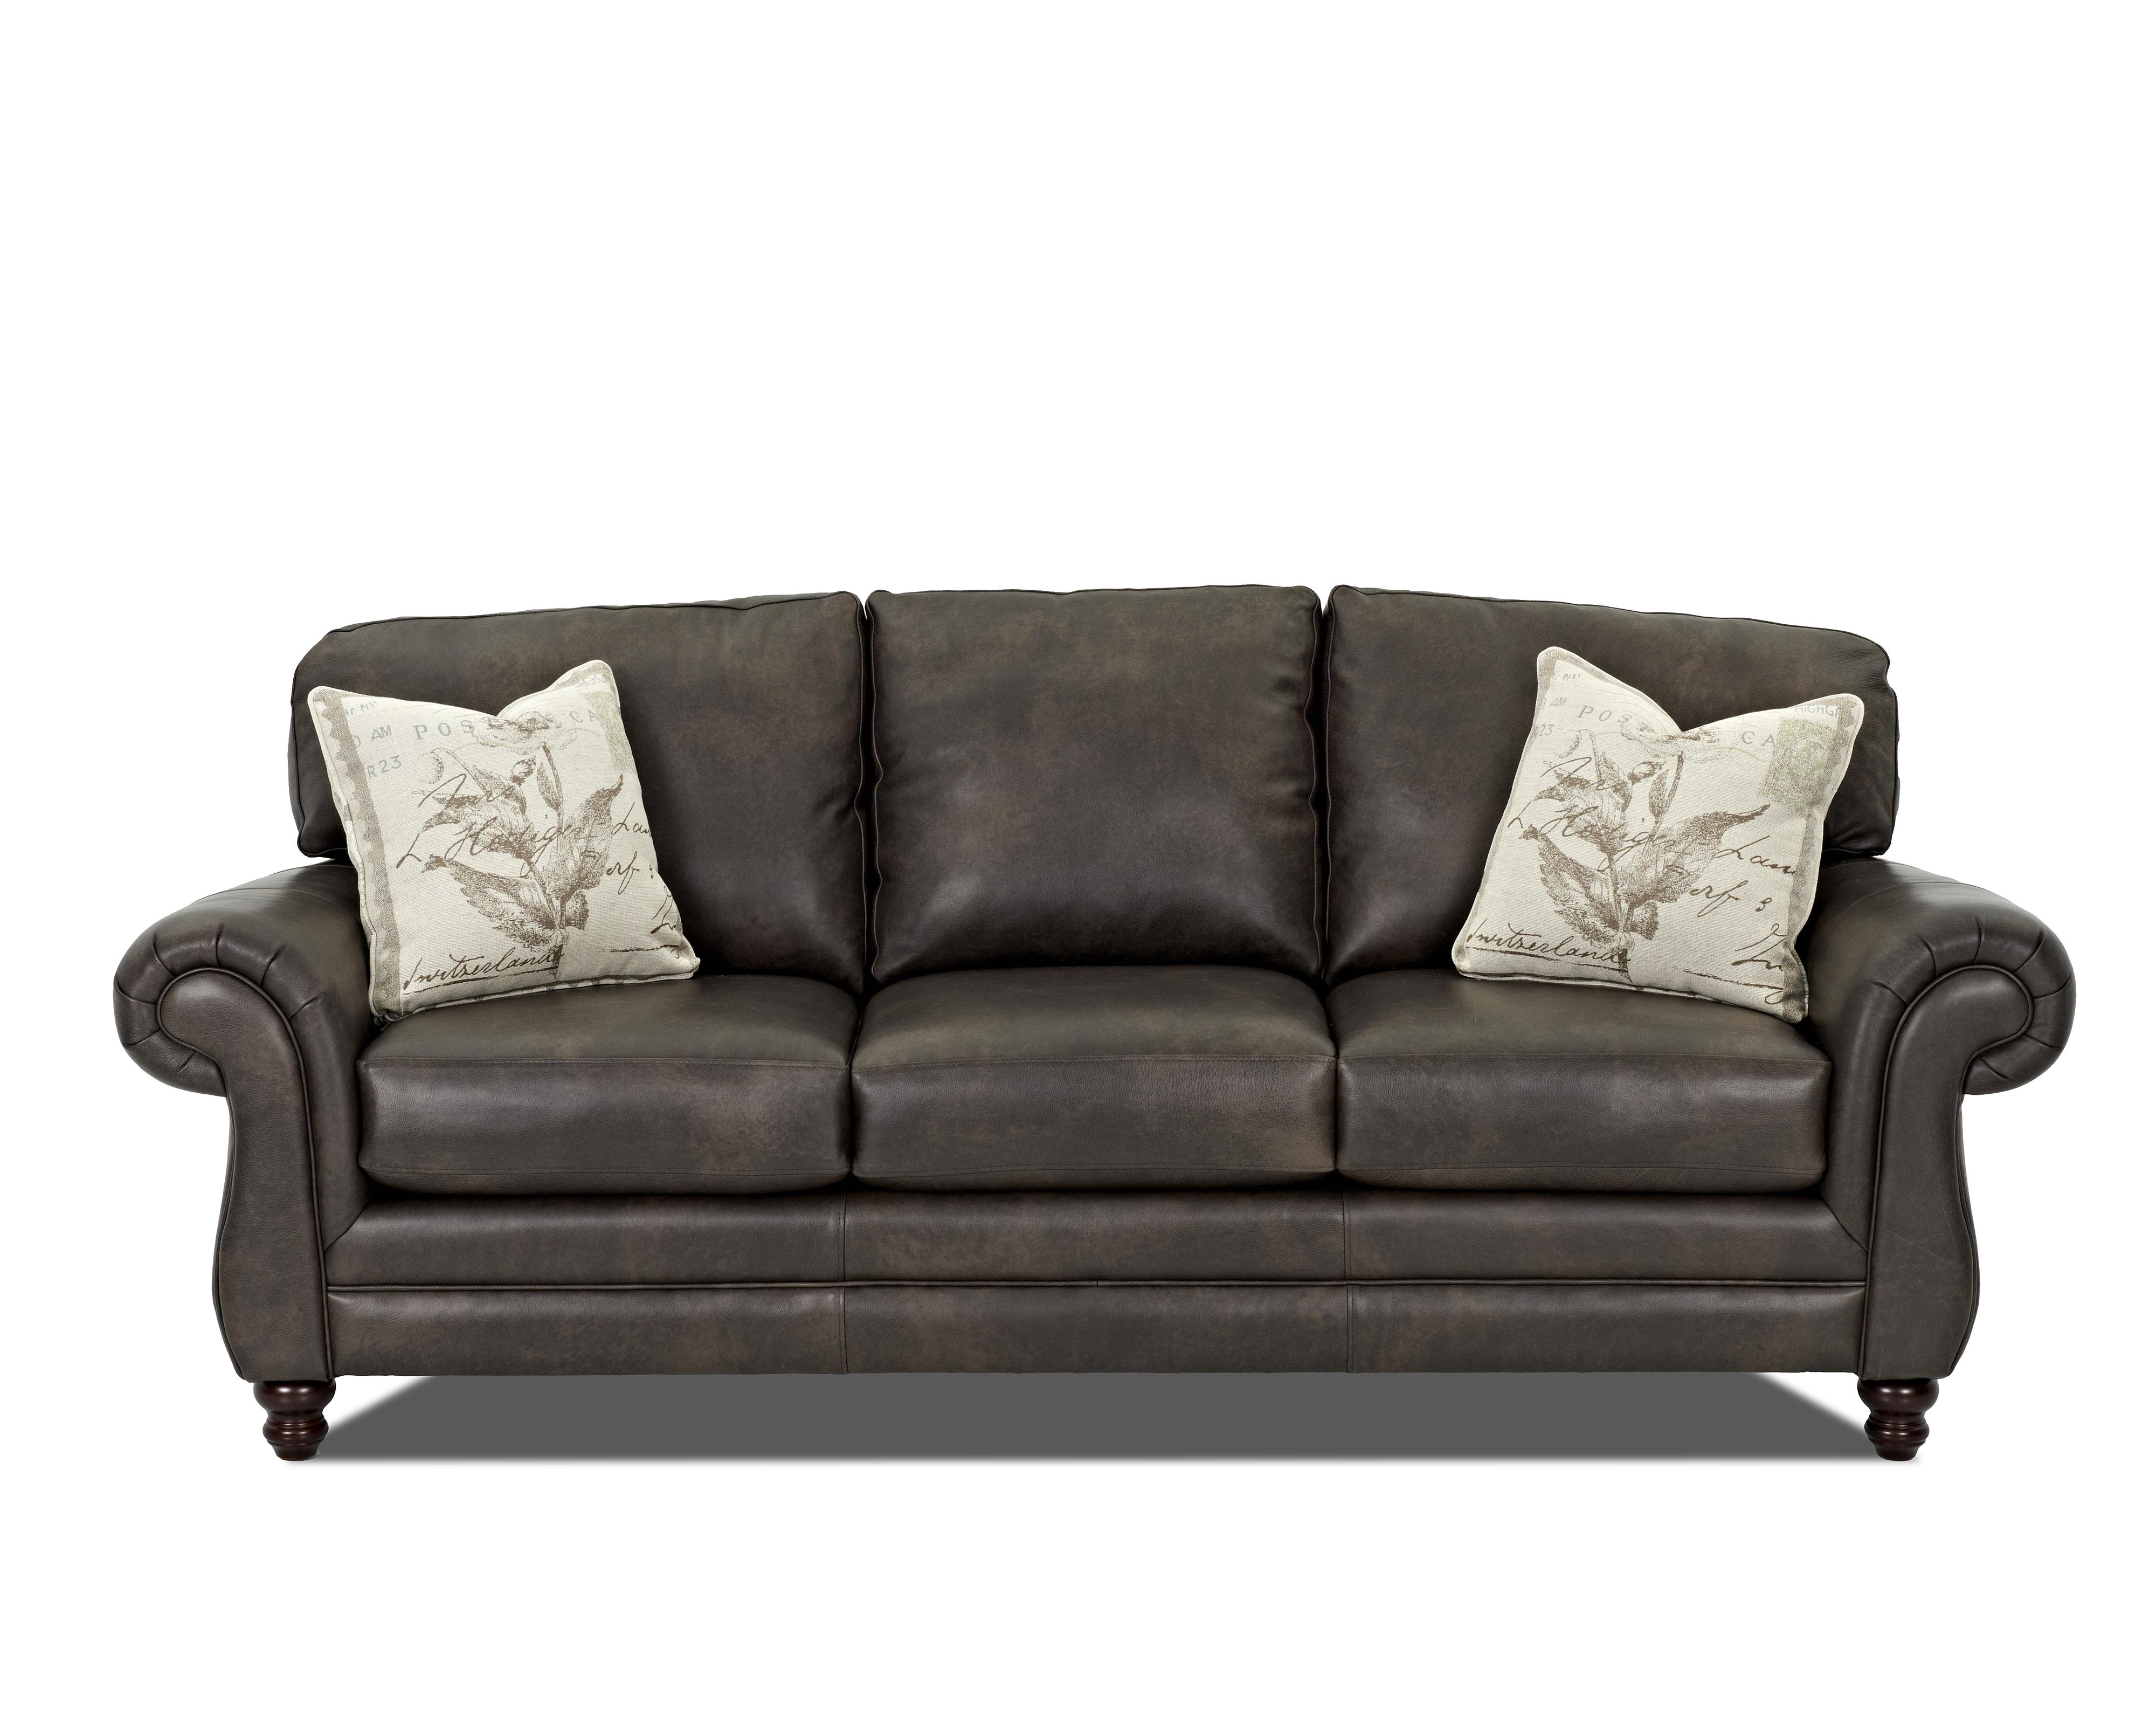 Klaussner sofa leather refil sofa Leather sofa throws